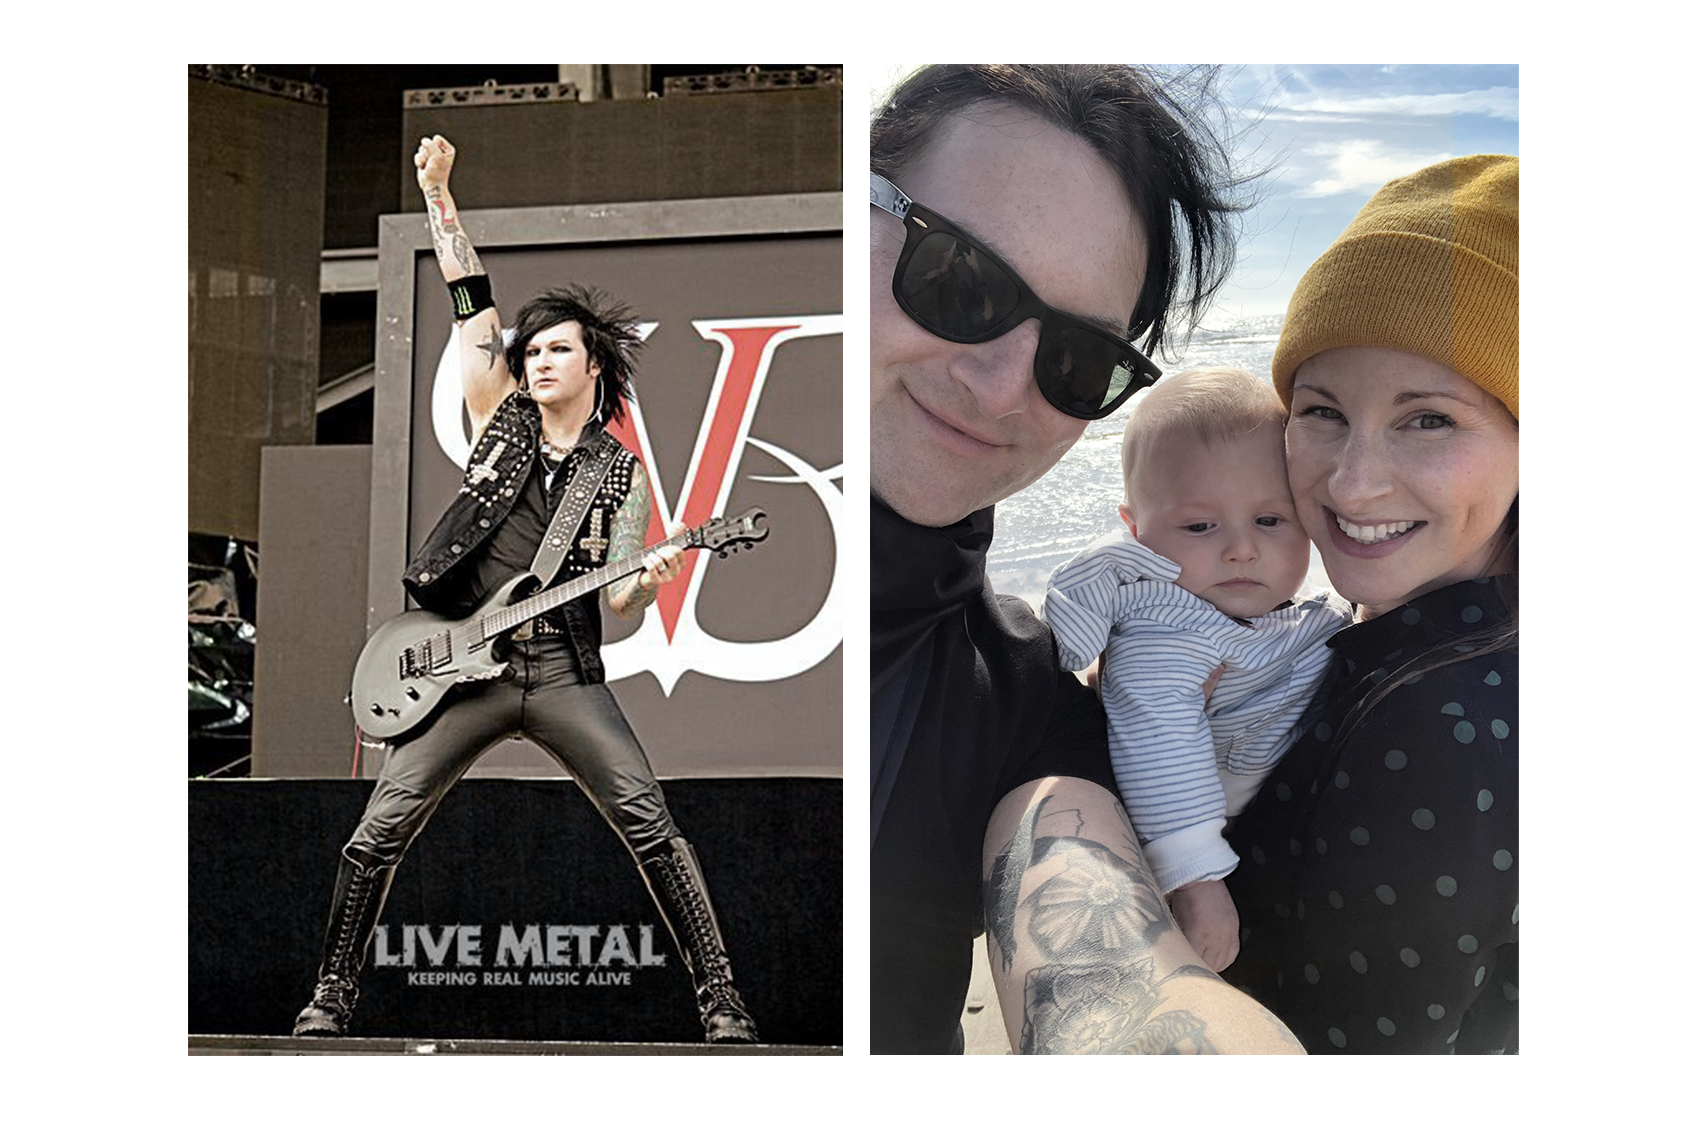 Jinxx performing on stage and with his wife & son, Lennon